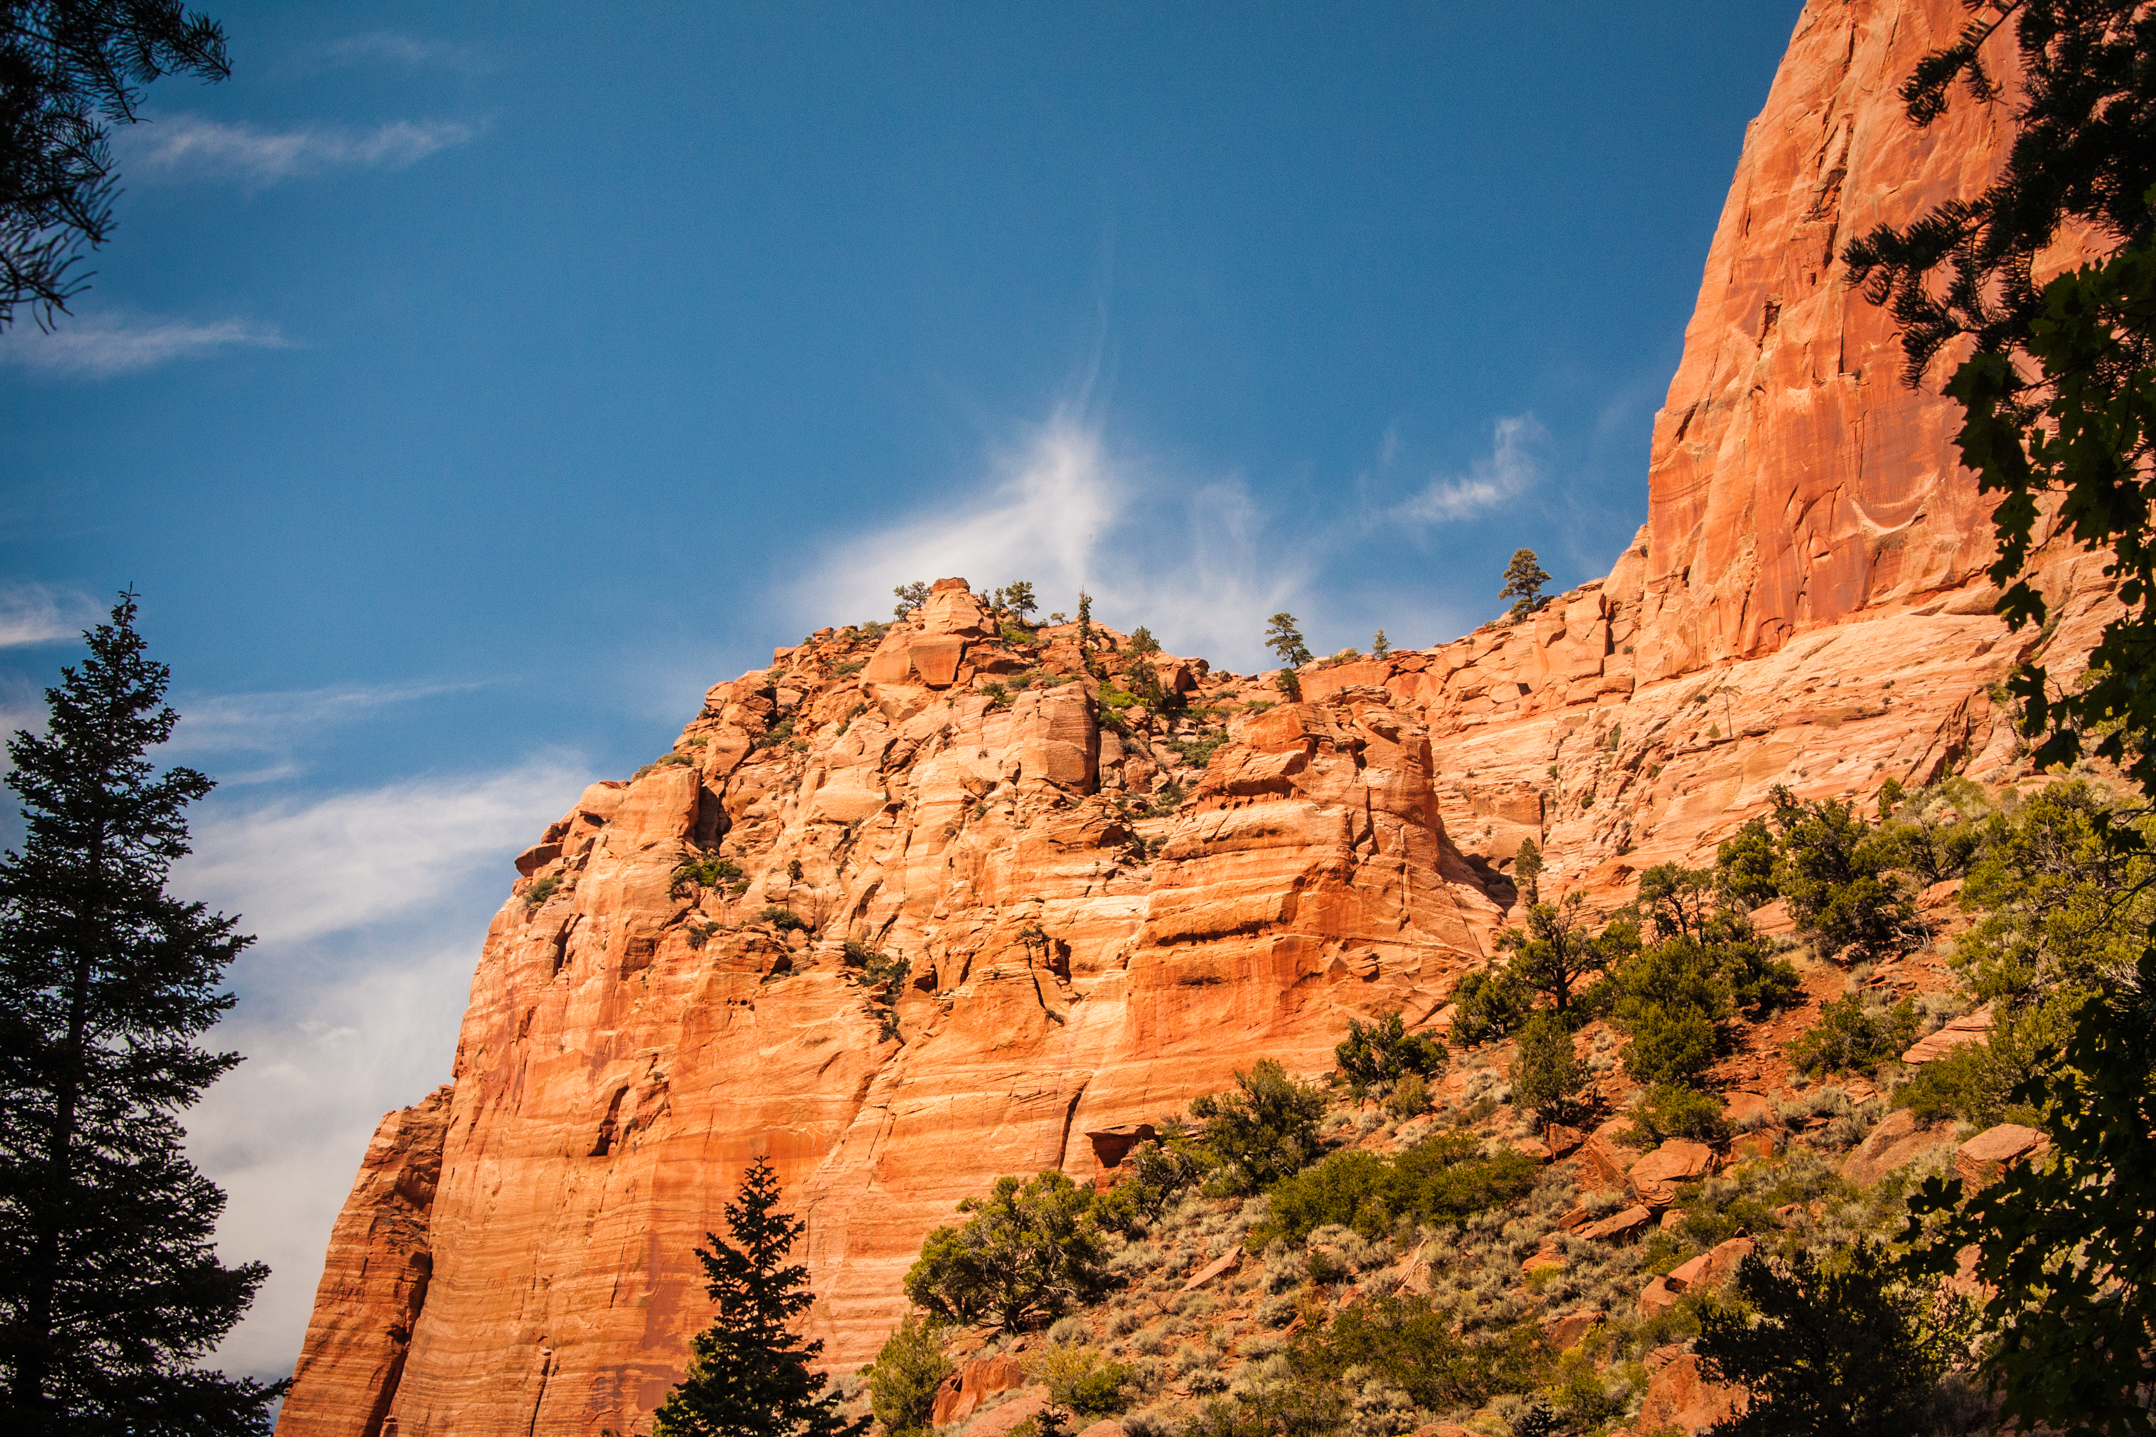 Bryce Canyon spires and hoodoos, Finding Fall Color Gold in Zion National Park